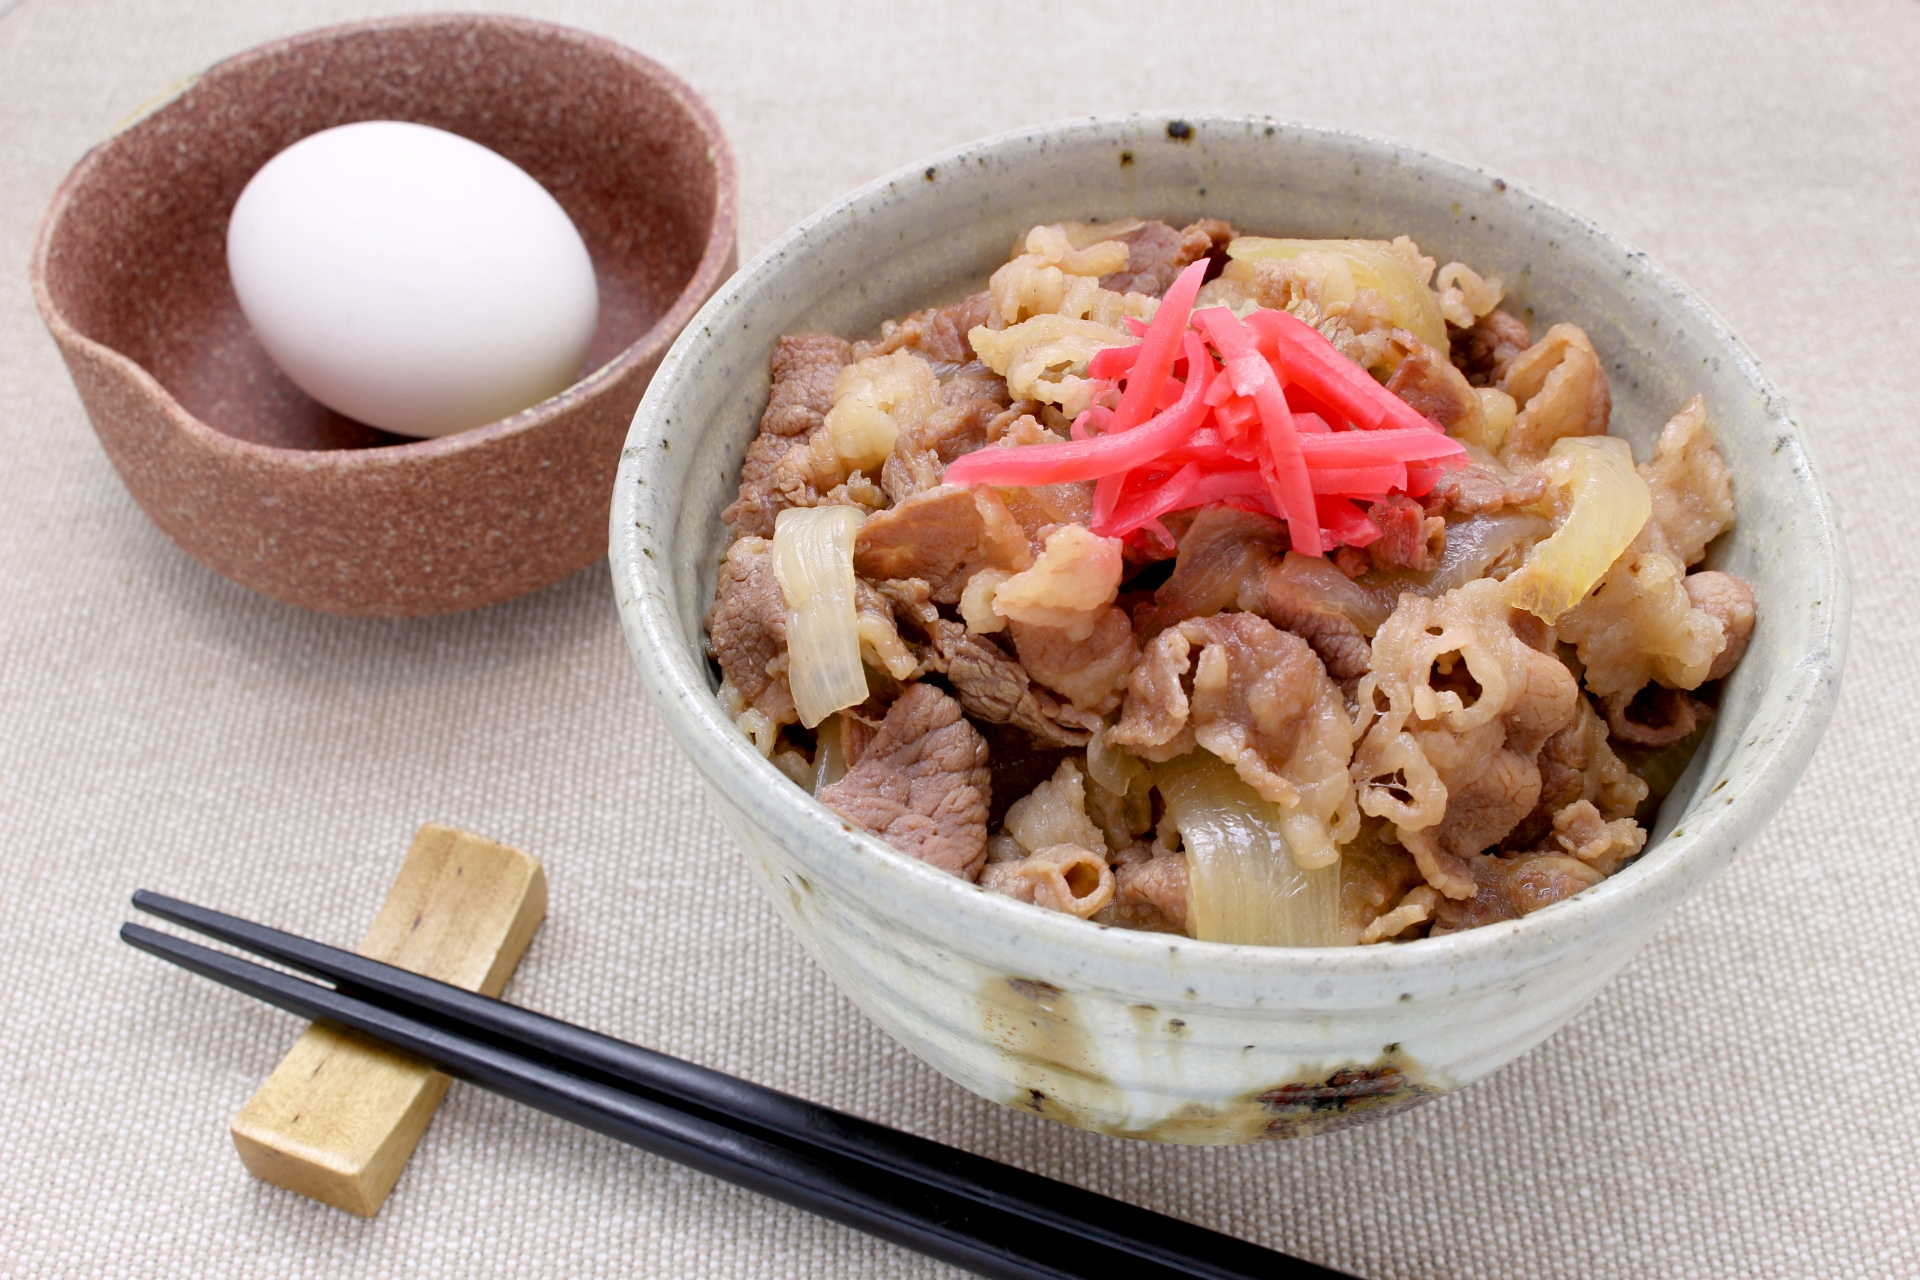 A picture of a bowl of gyudon